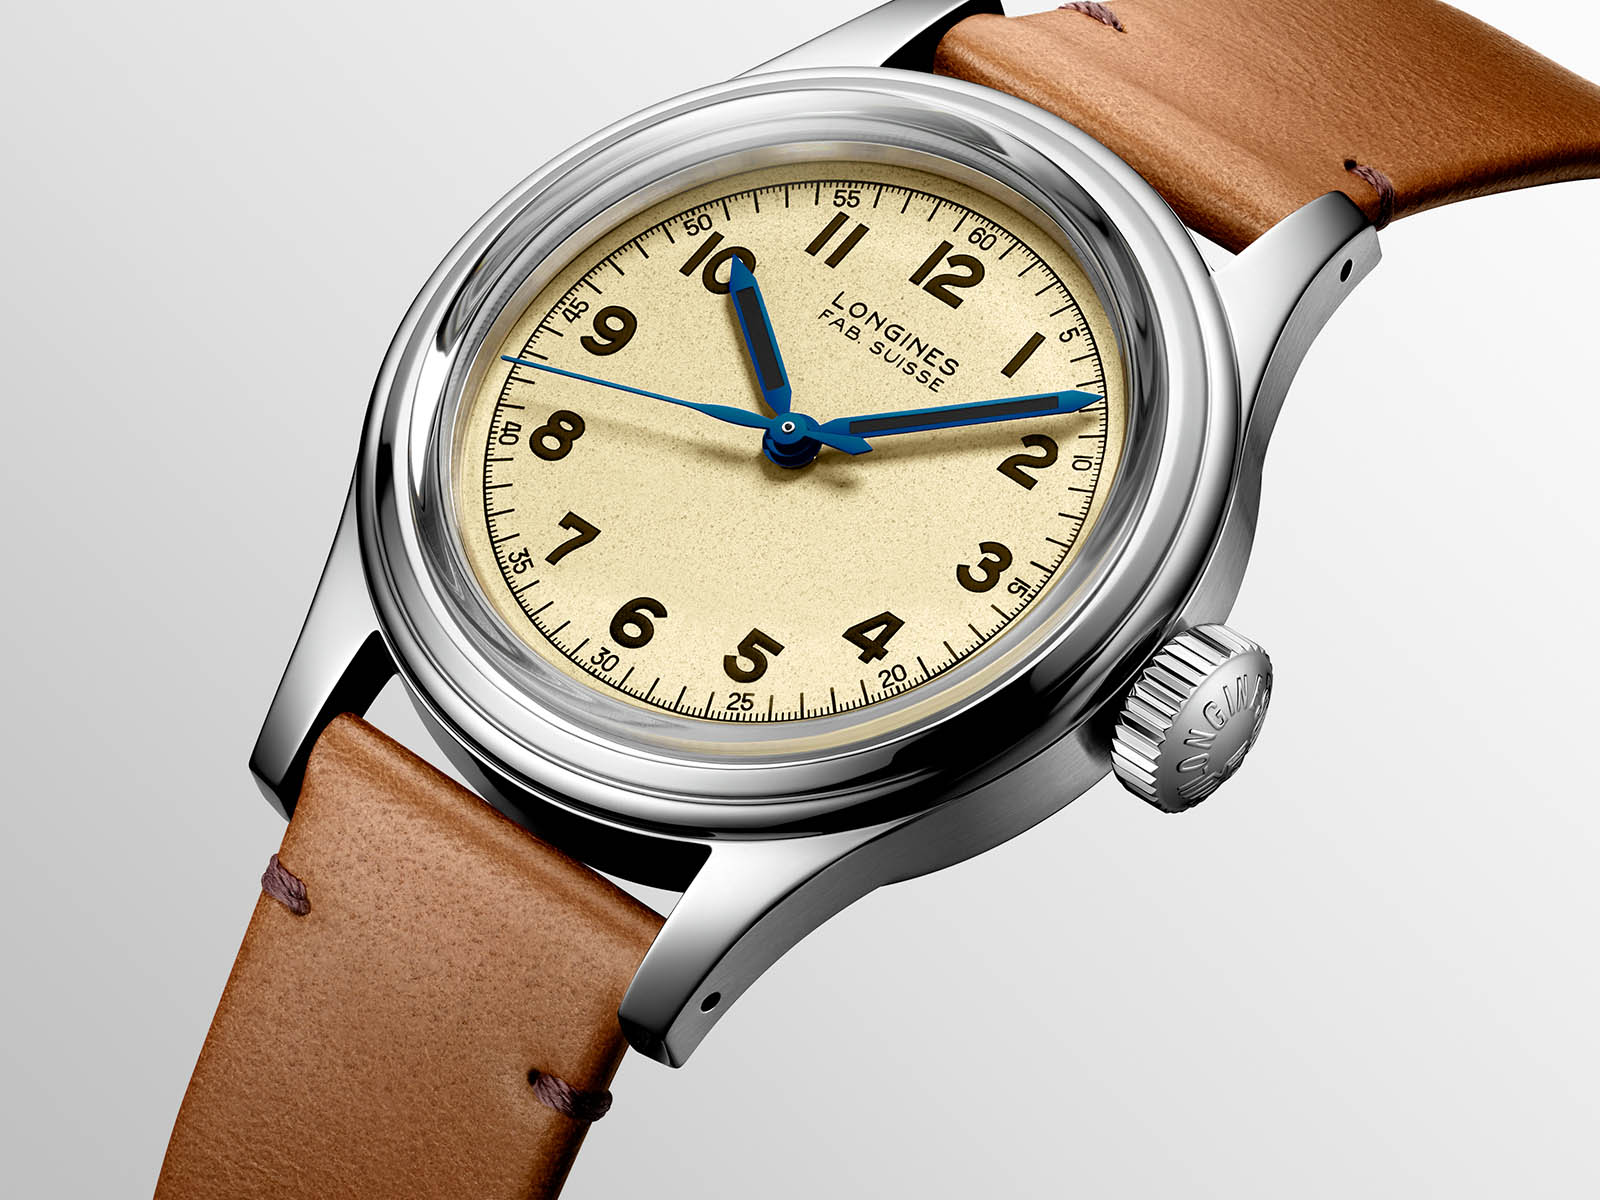 l2-833-4-93-2-longines-heritage-military-marine-nationale-2.jpg